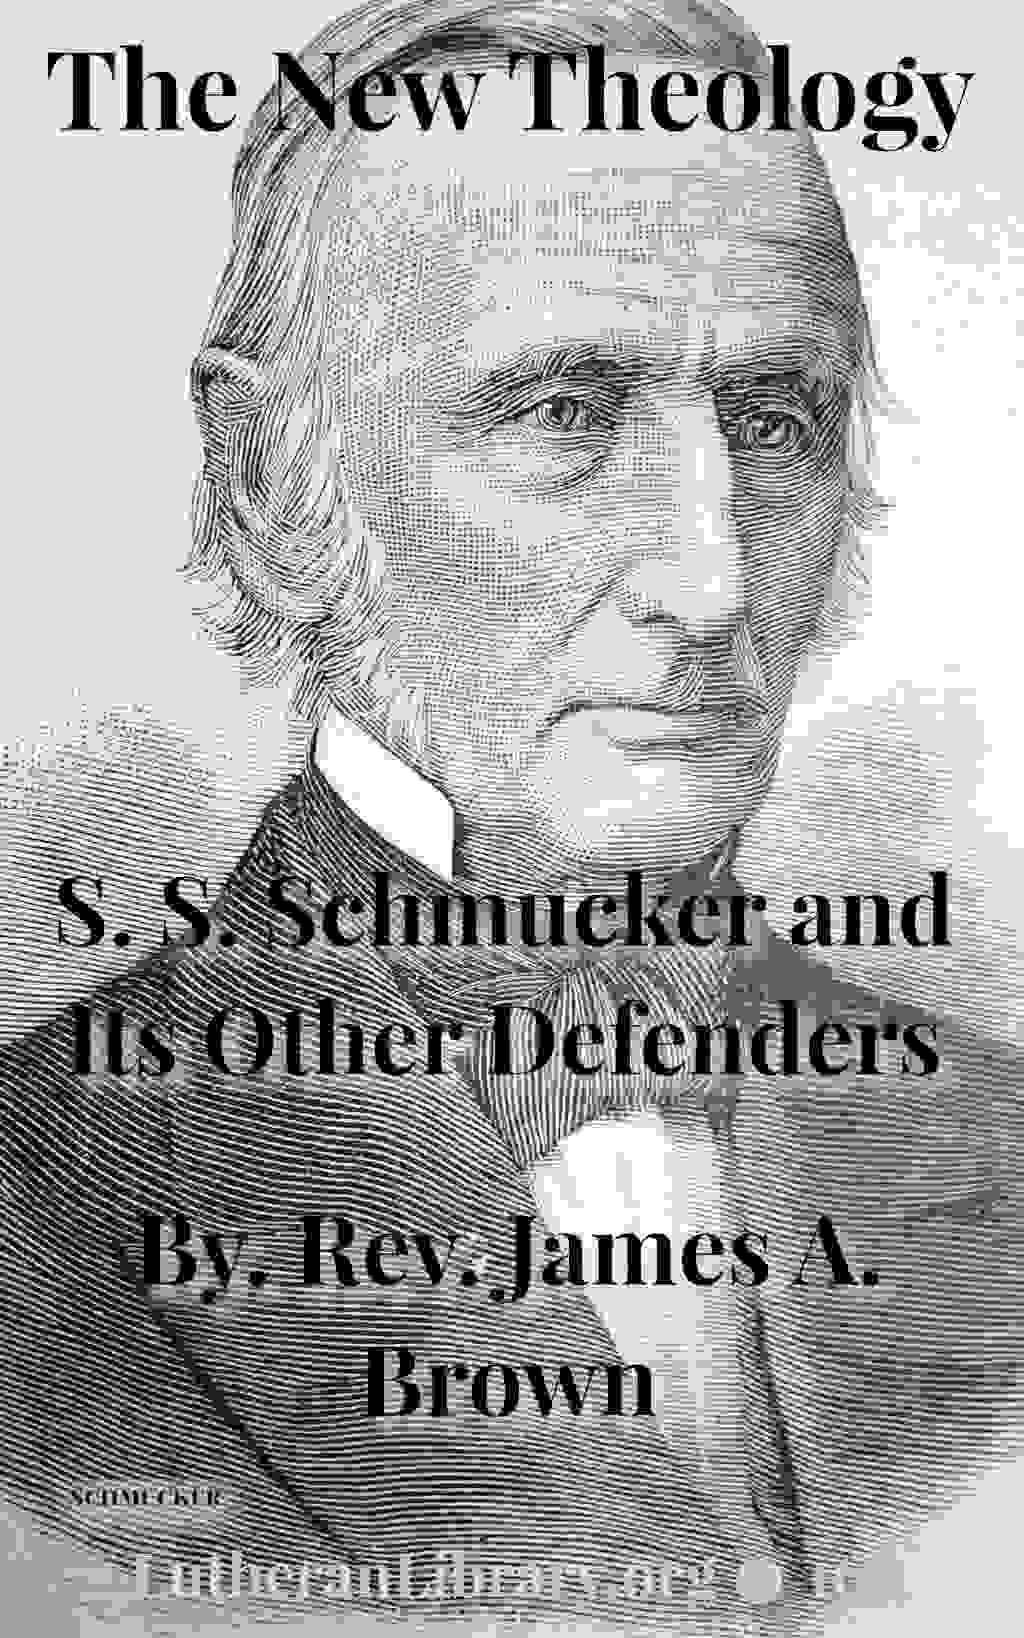 The New Theology: S. S. Schmucker And Its Other Defenders by James Allen Brown (1821-1882)